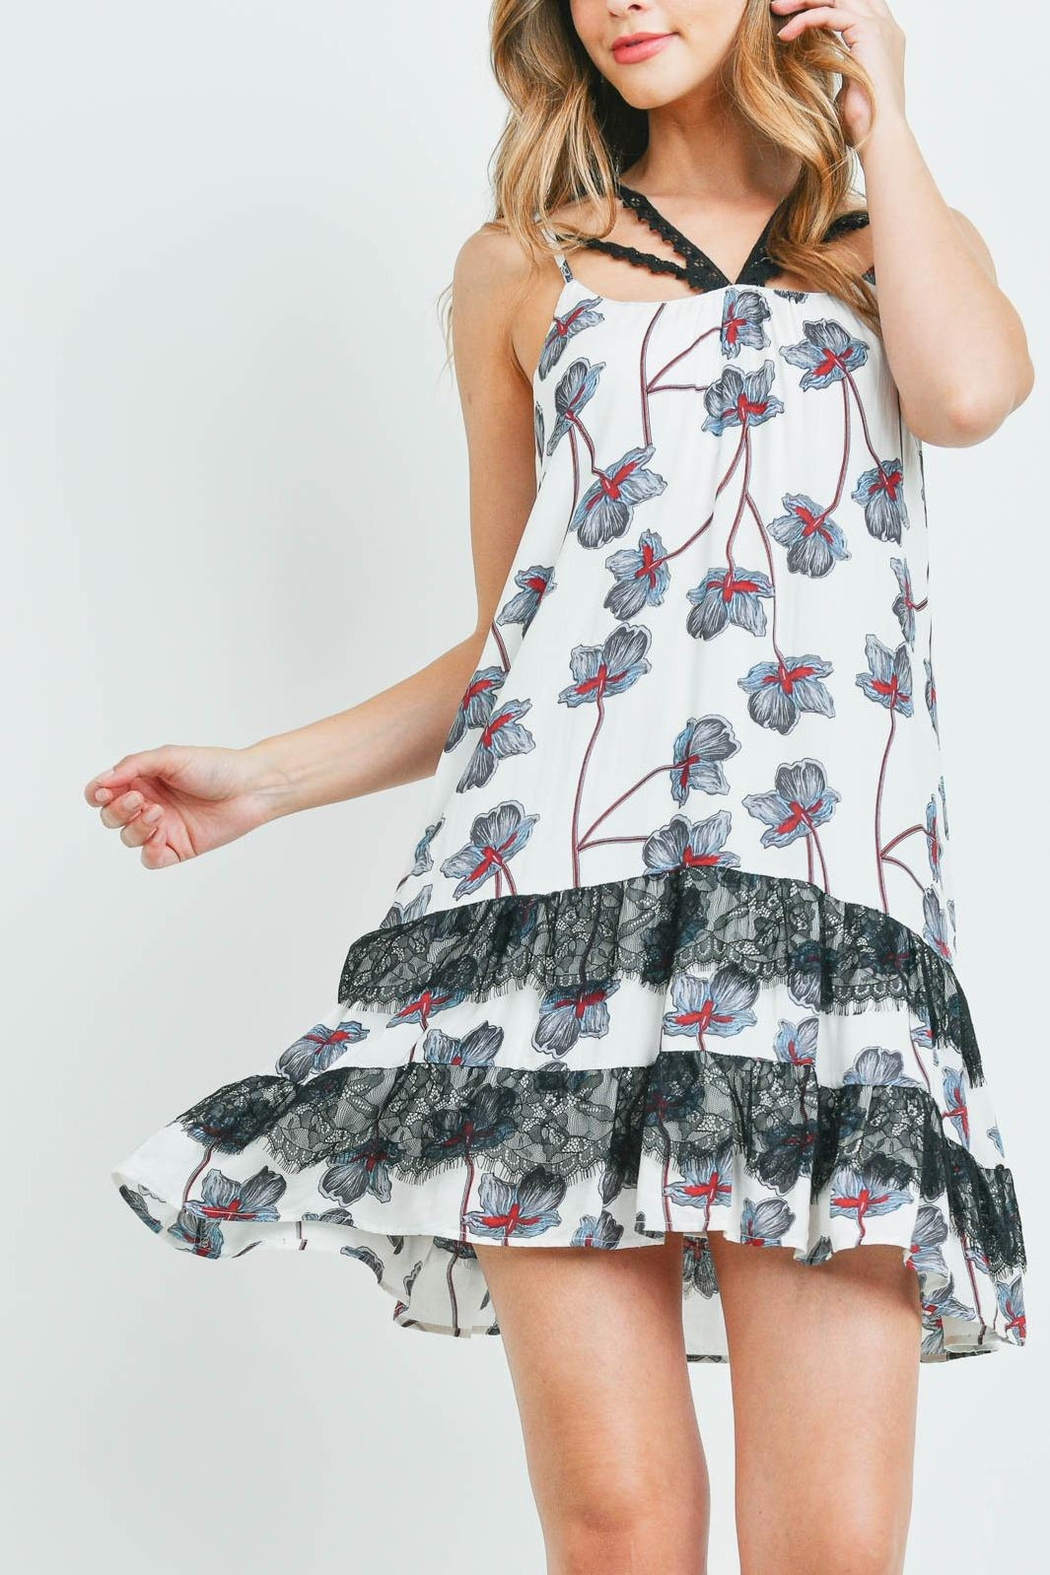 Riah Fashion White-With-Flower Print Dress - Side Cropped Image